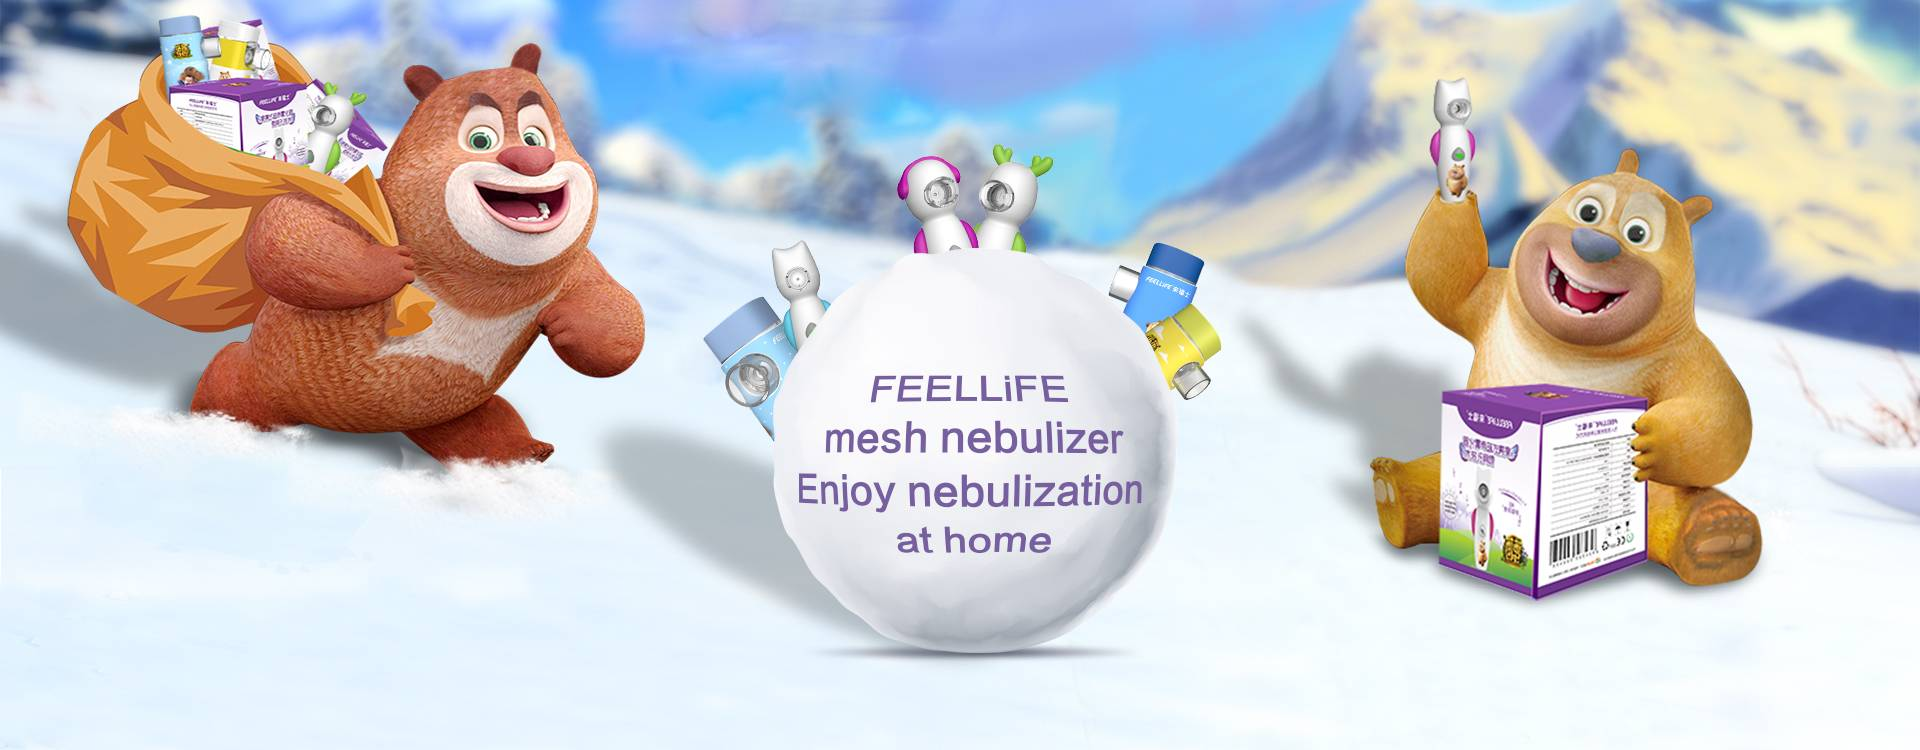 FEELLiFE portable mesh nebulizer, with compact and portable shape design, replaceable medication cup, fine and uniform particles, can penetrate to deep lung to achieve better treatment. Ideal for use at home and travel, easy to use. Effective treatment for respiratory diseases like asthma and COPD